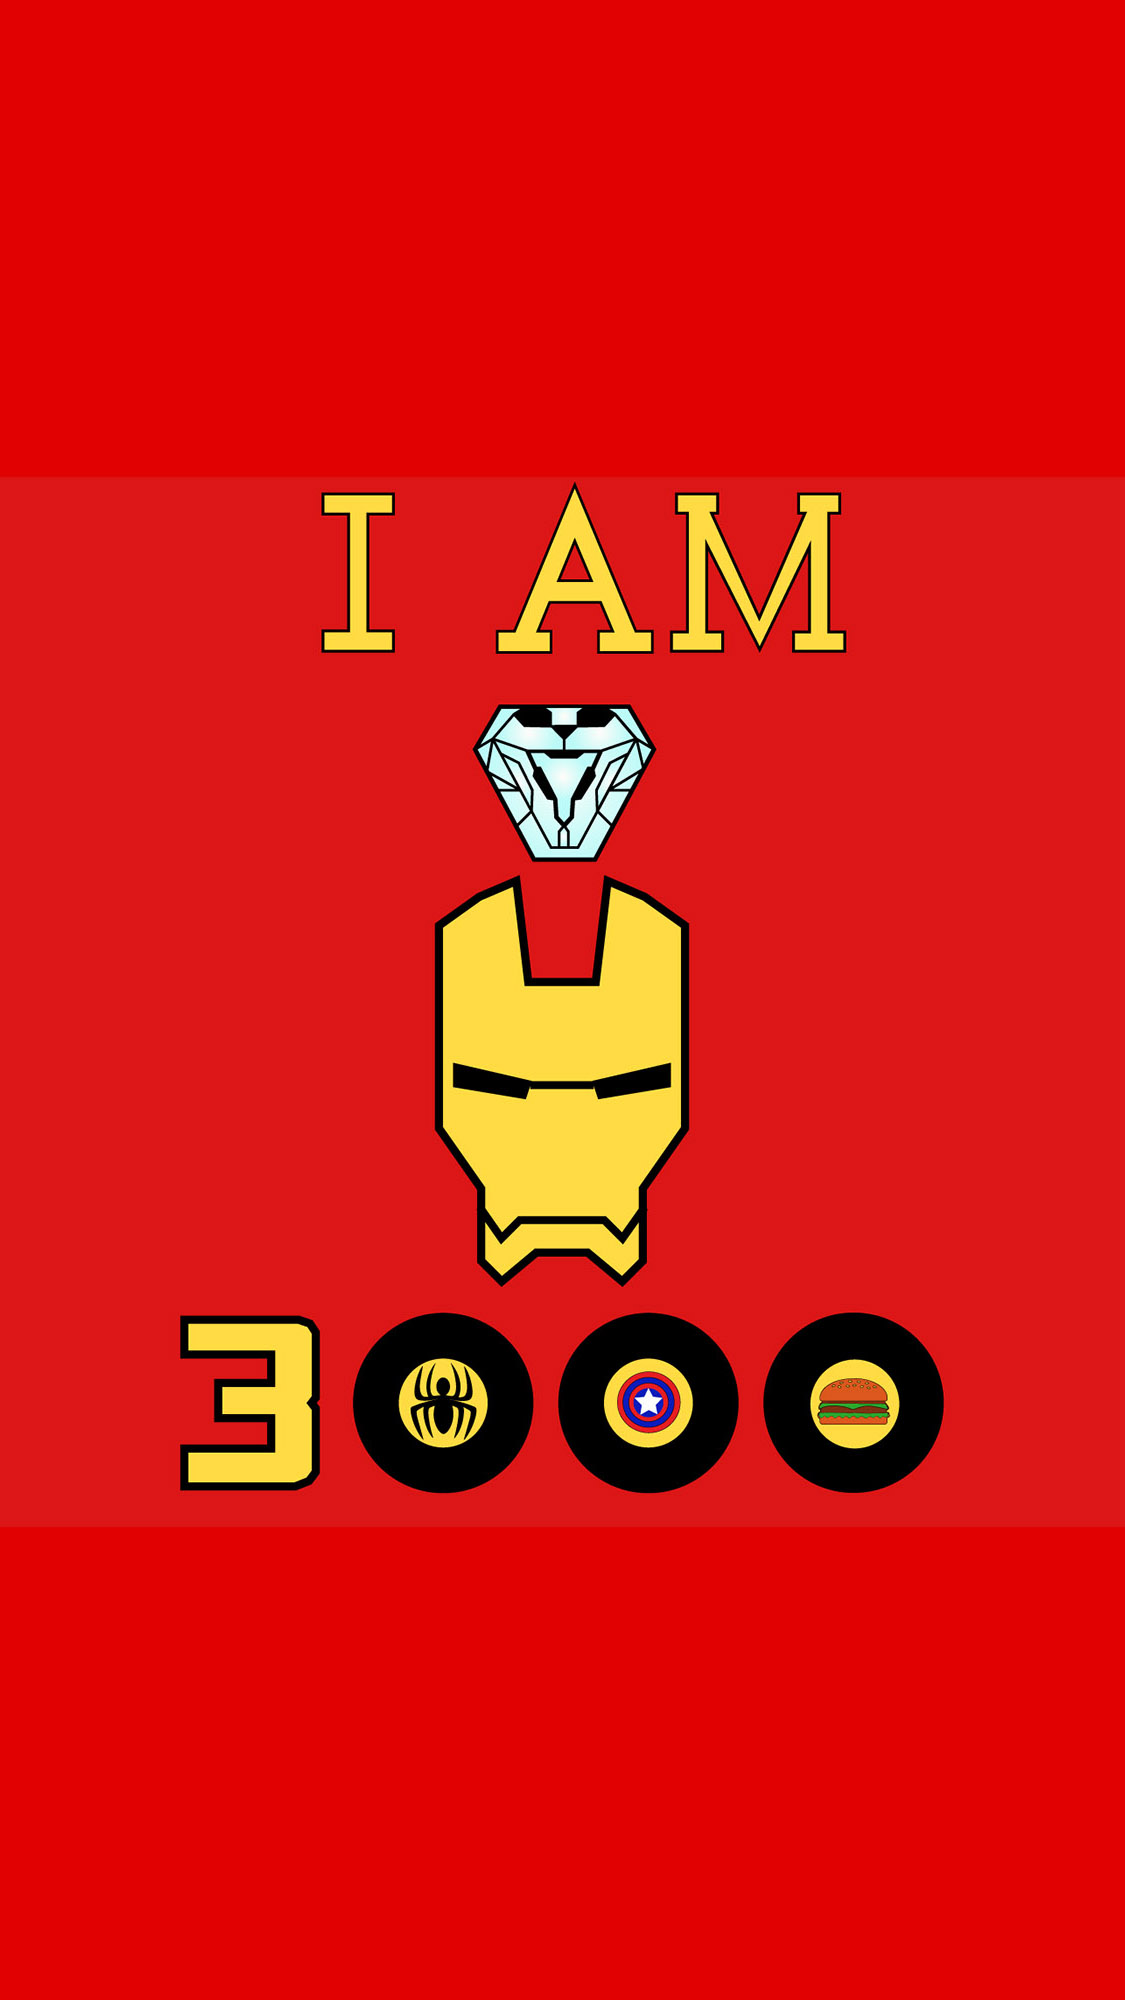 I am Iron Man Love You 3000 iPhone Wallpaper